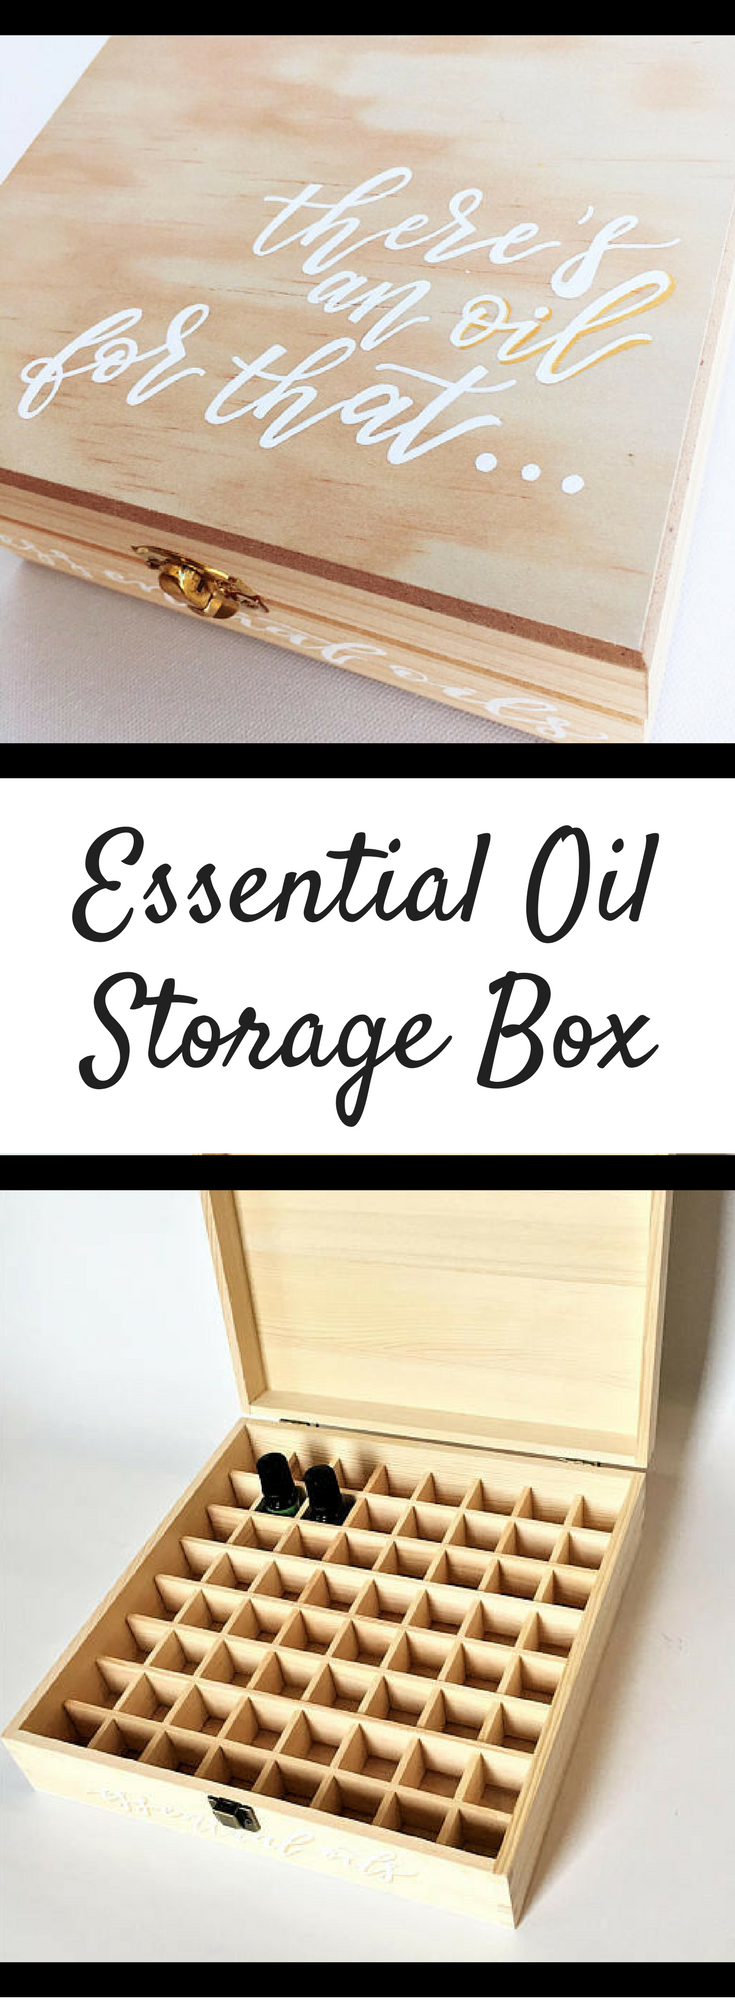 Essential Oil Box   Wooden Essential Oil Box   Customized Gift   Essential Oil Storage   Hand Painted   Natural Wood Box #ad #essentialoils #essentialoil #oils #youngliving #younglivingessentialoils #storage #wooden #gifts #giftidea #giftideas #giftsforher #giftsformom